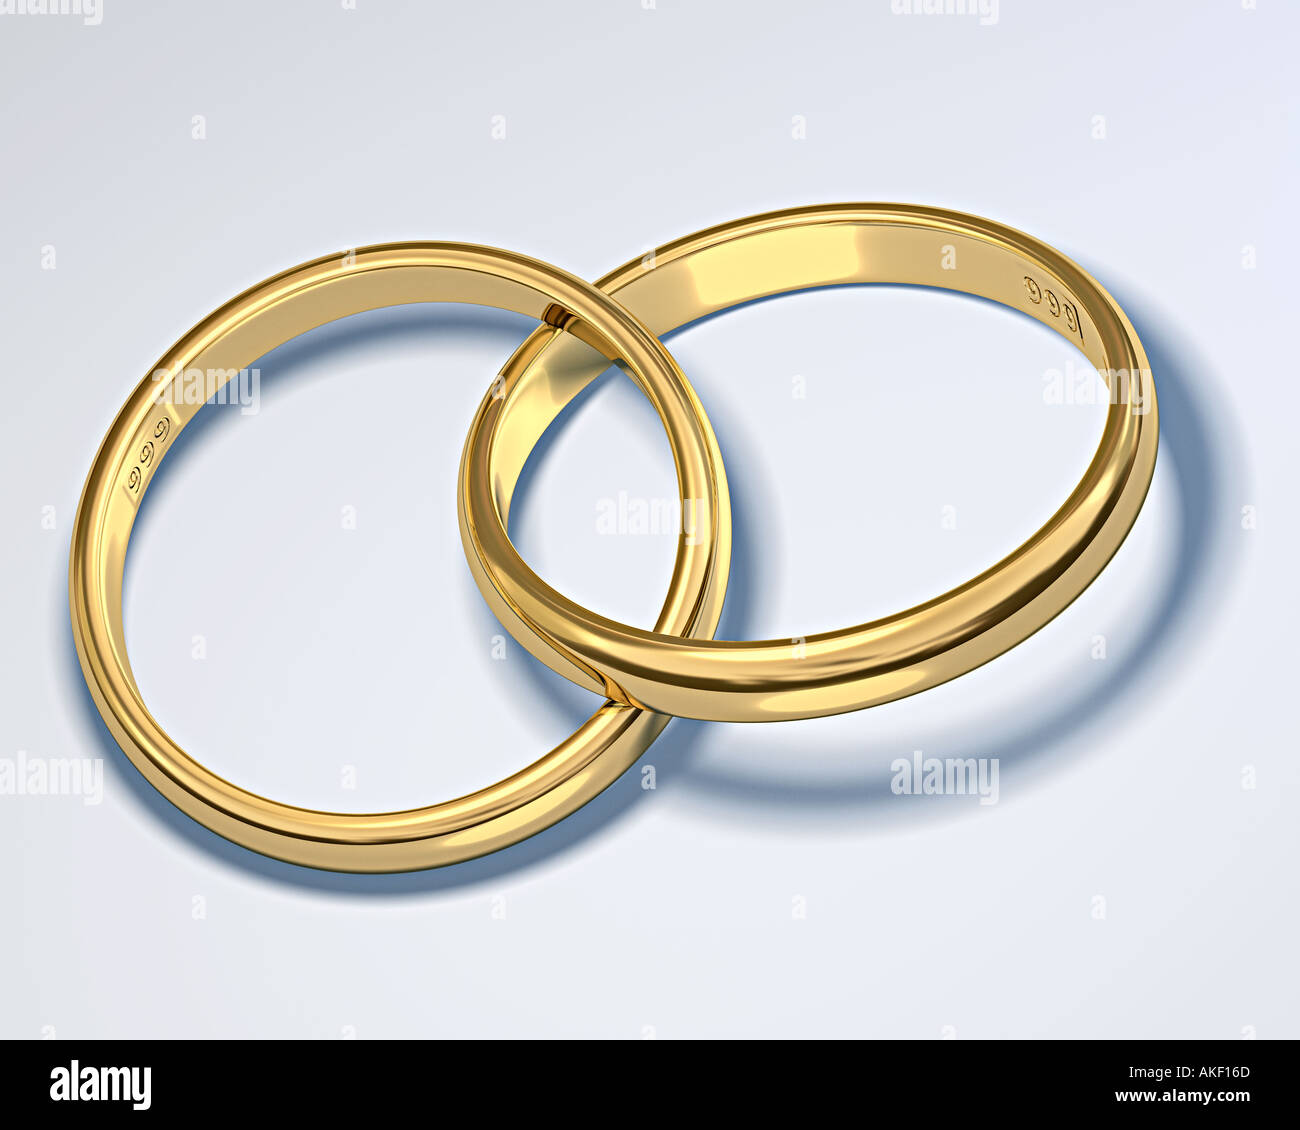 two rings out of gold interlocked symbol of wedding marriage connection fusion relationship - Stock Image